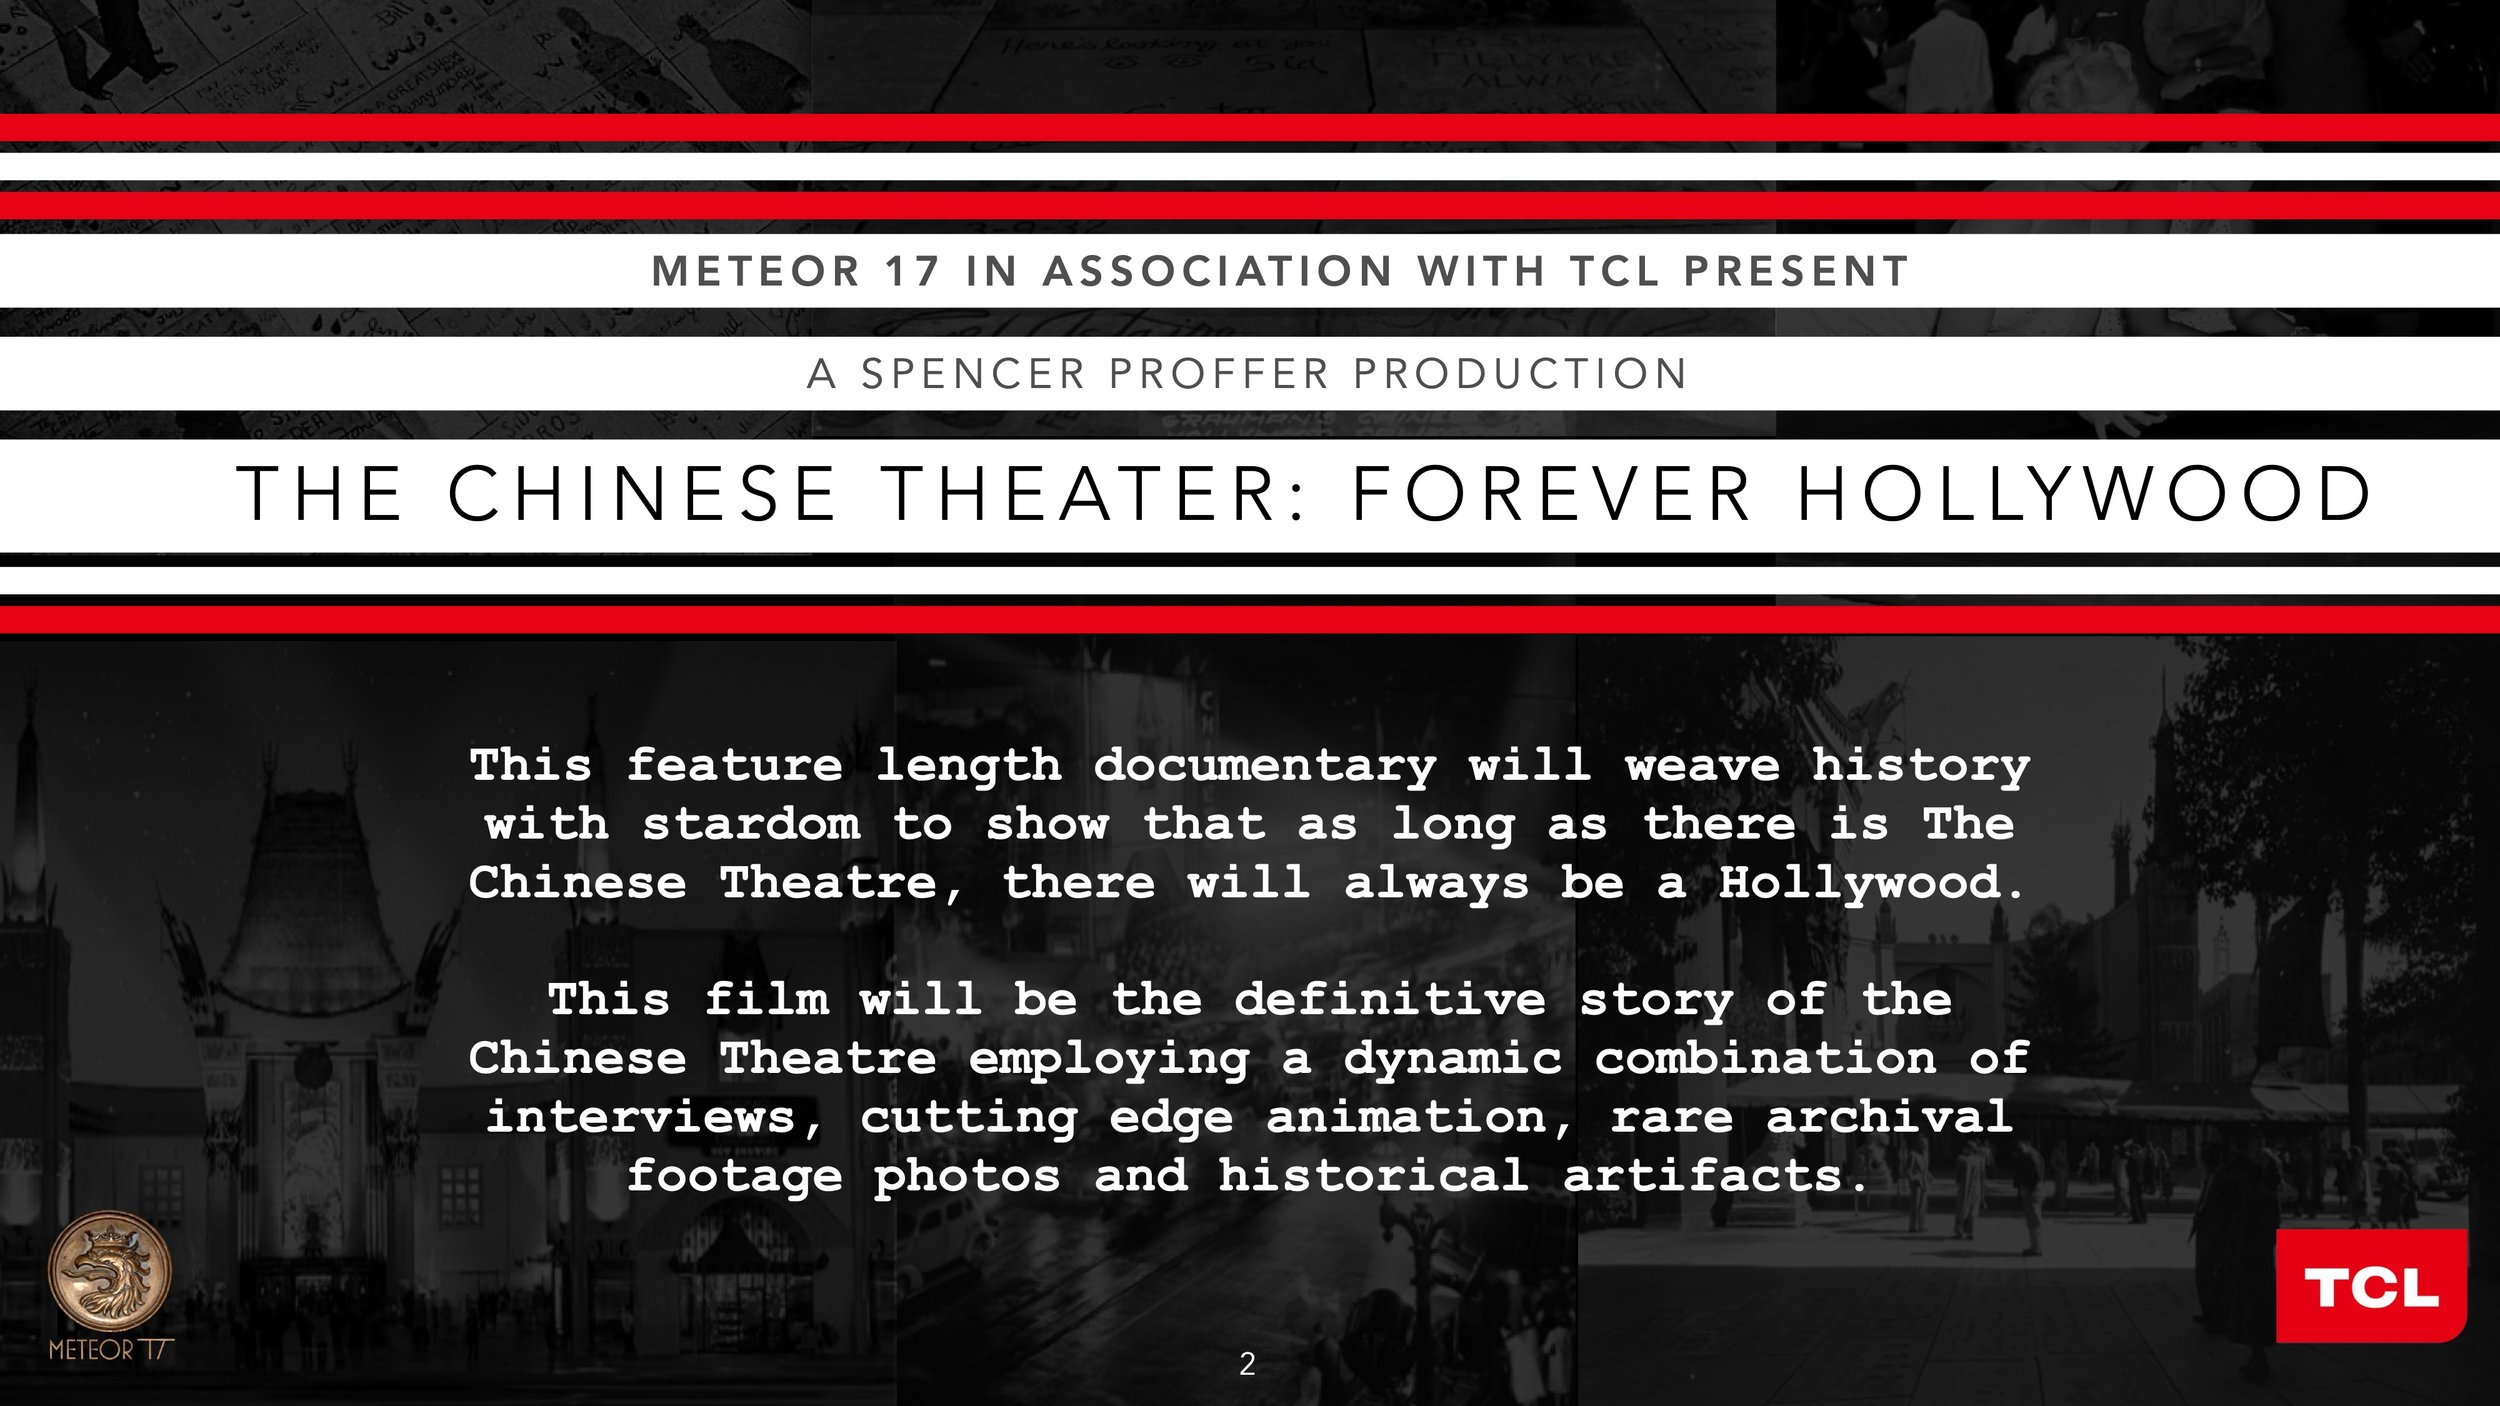 Chinese Theater Forever Hollywood v2+m 21JAN2019 2.jpeg